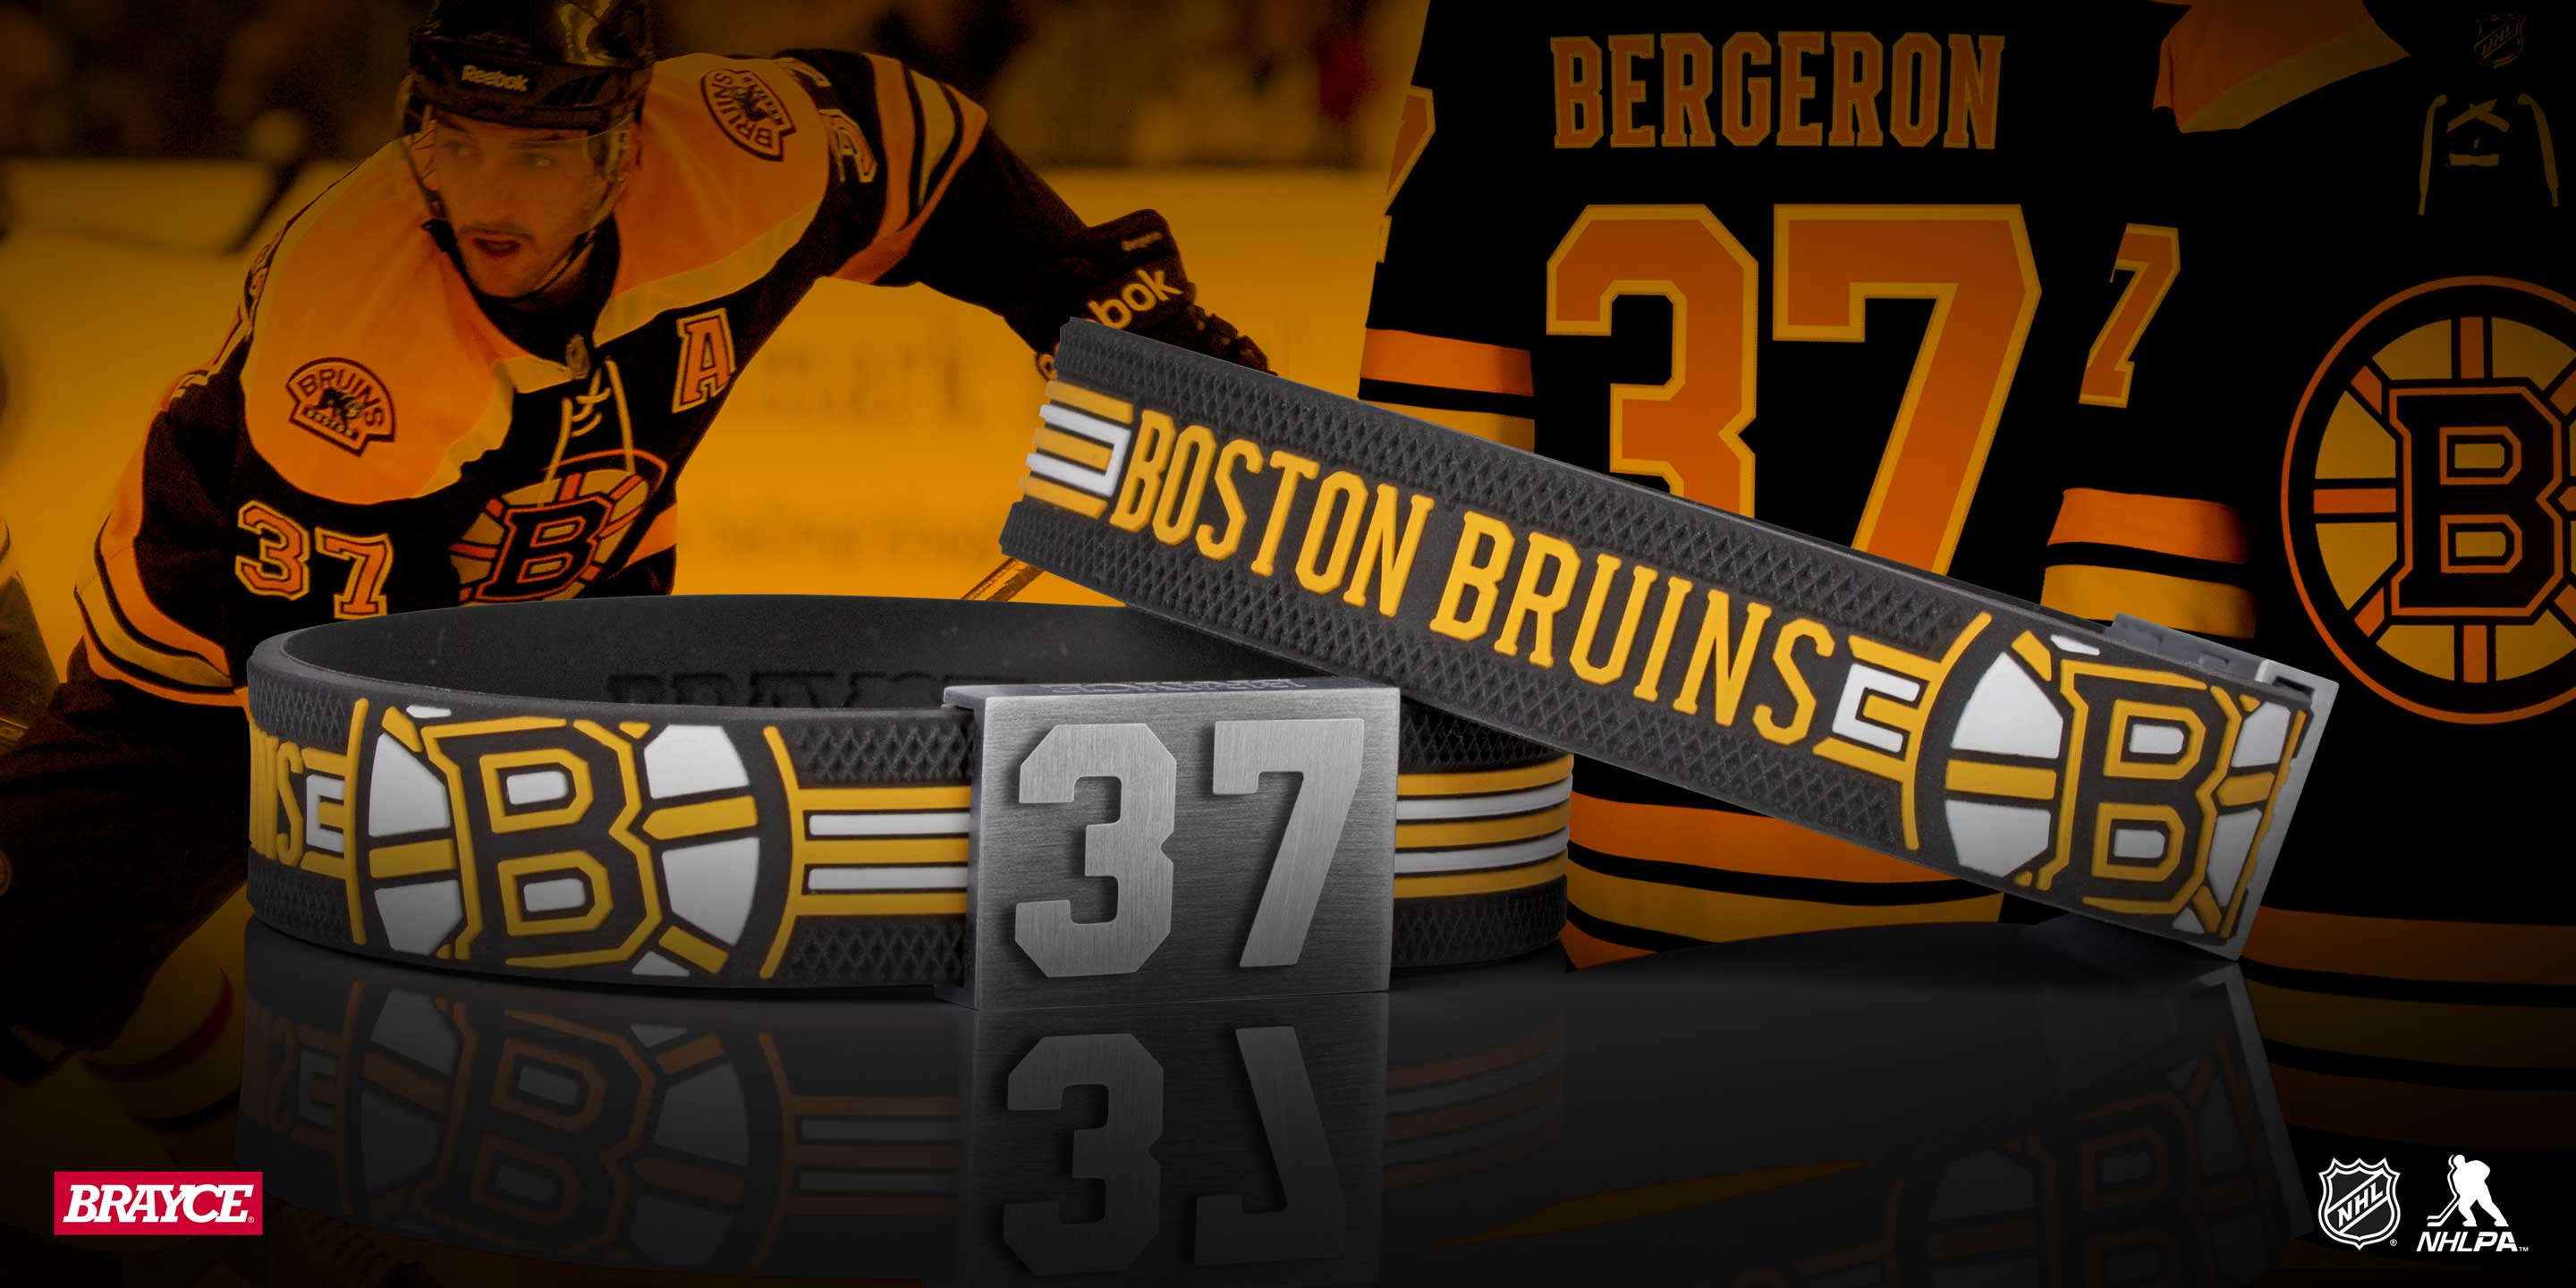 Boston Bruins braclet with a hockey puck haptic